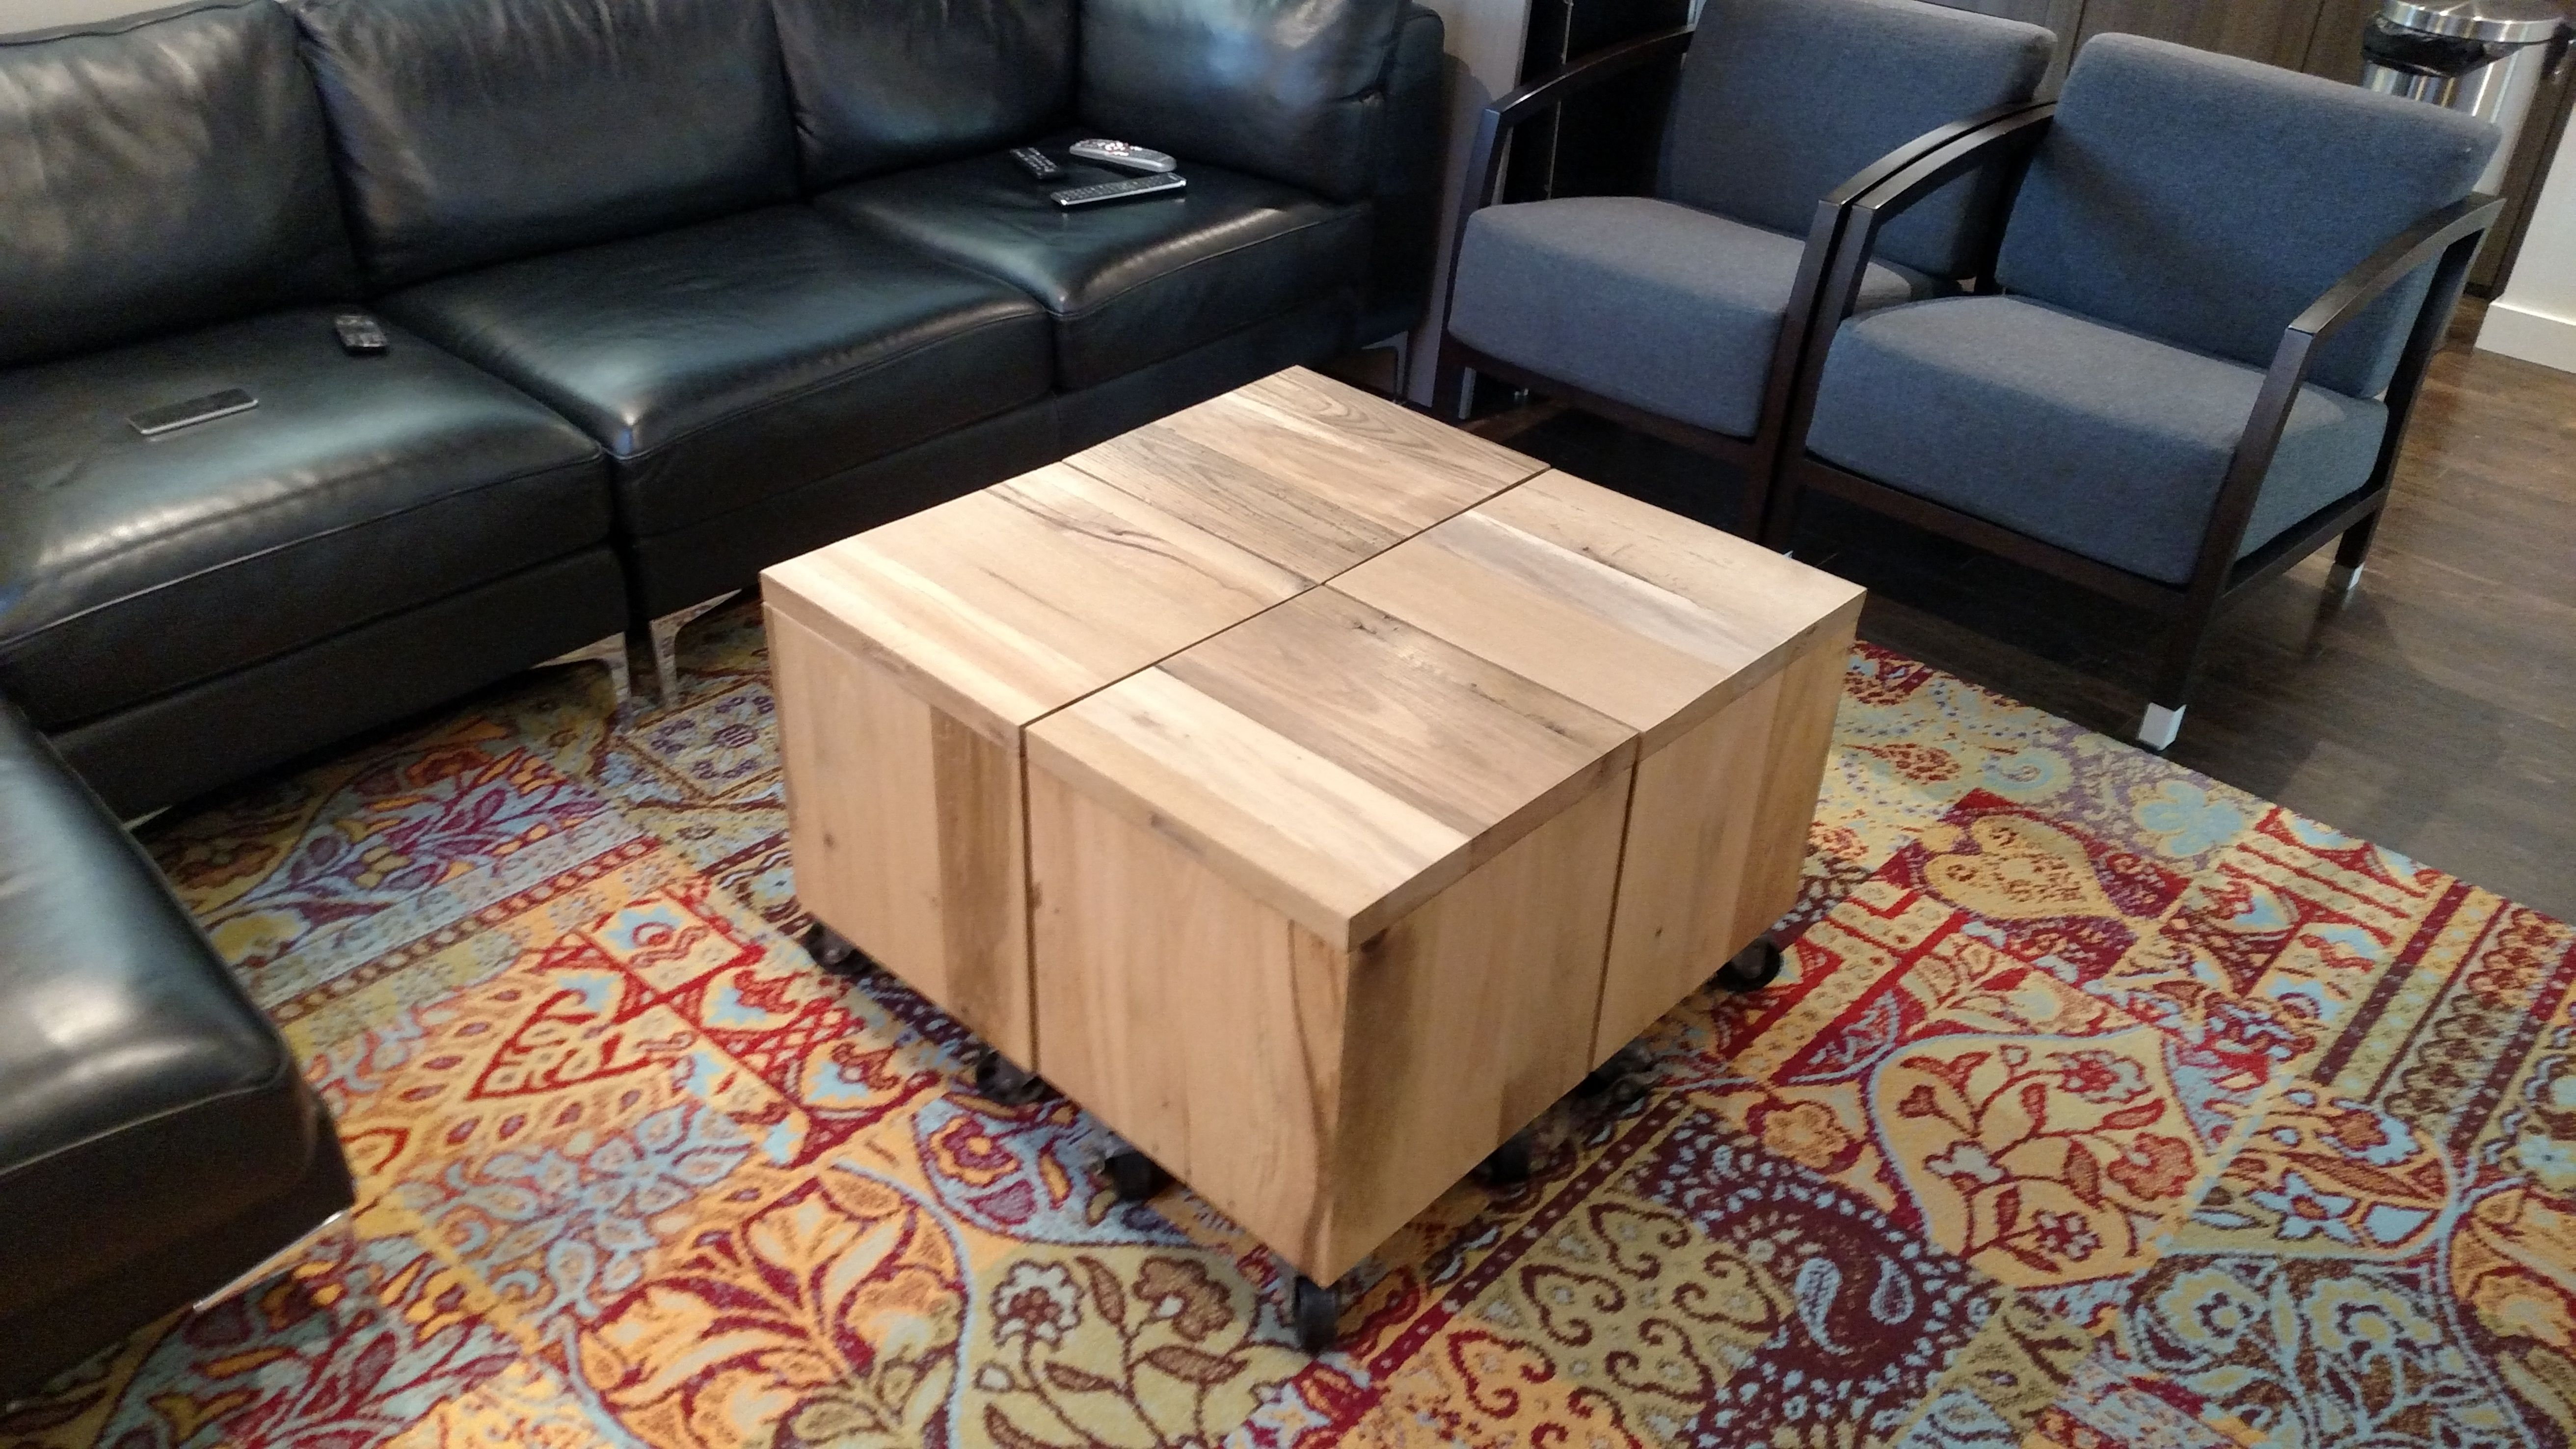 Buy a Handmade Reclaimed Wood Cube made to order from re dwell